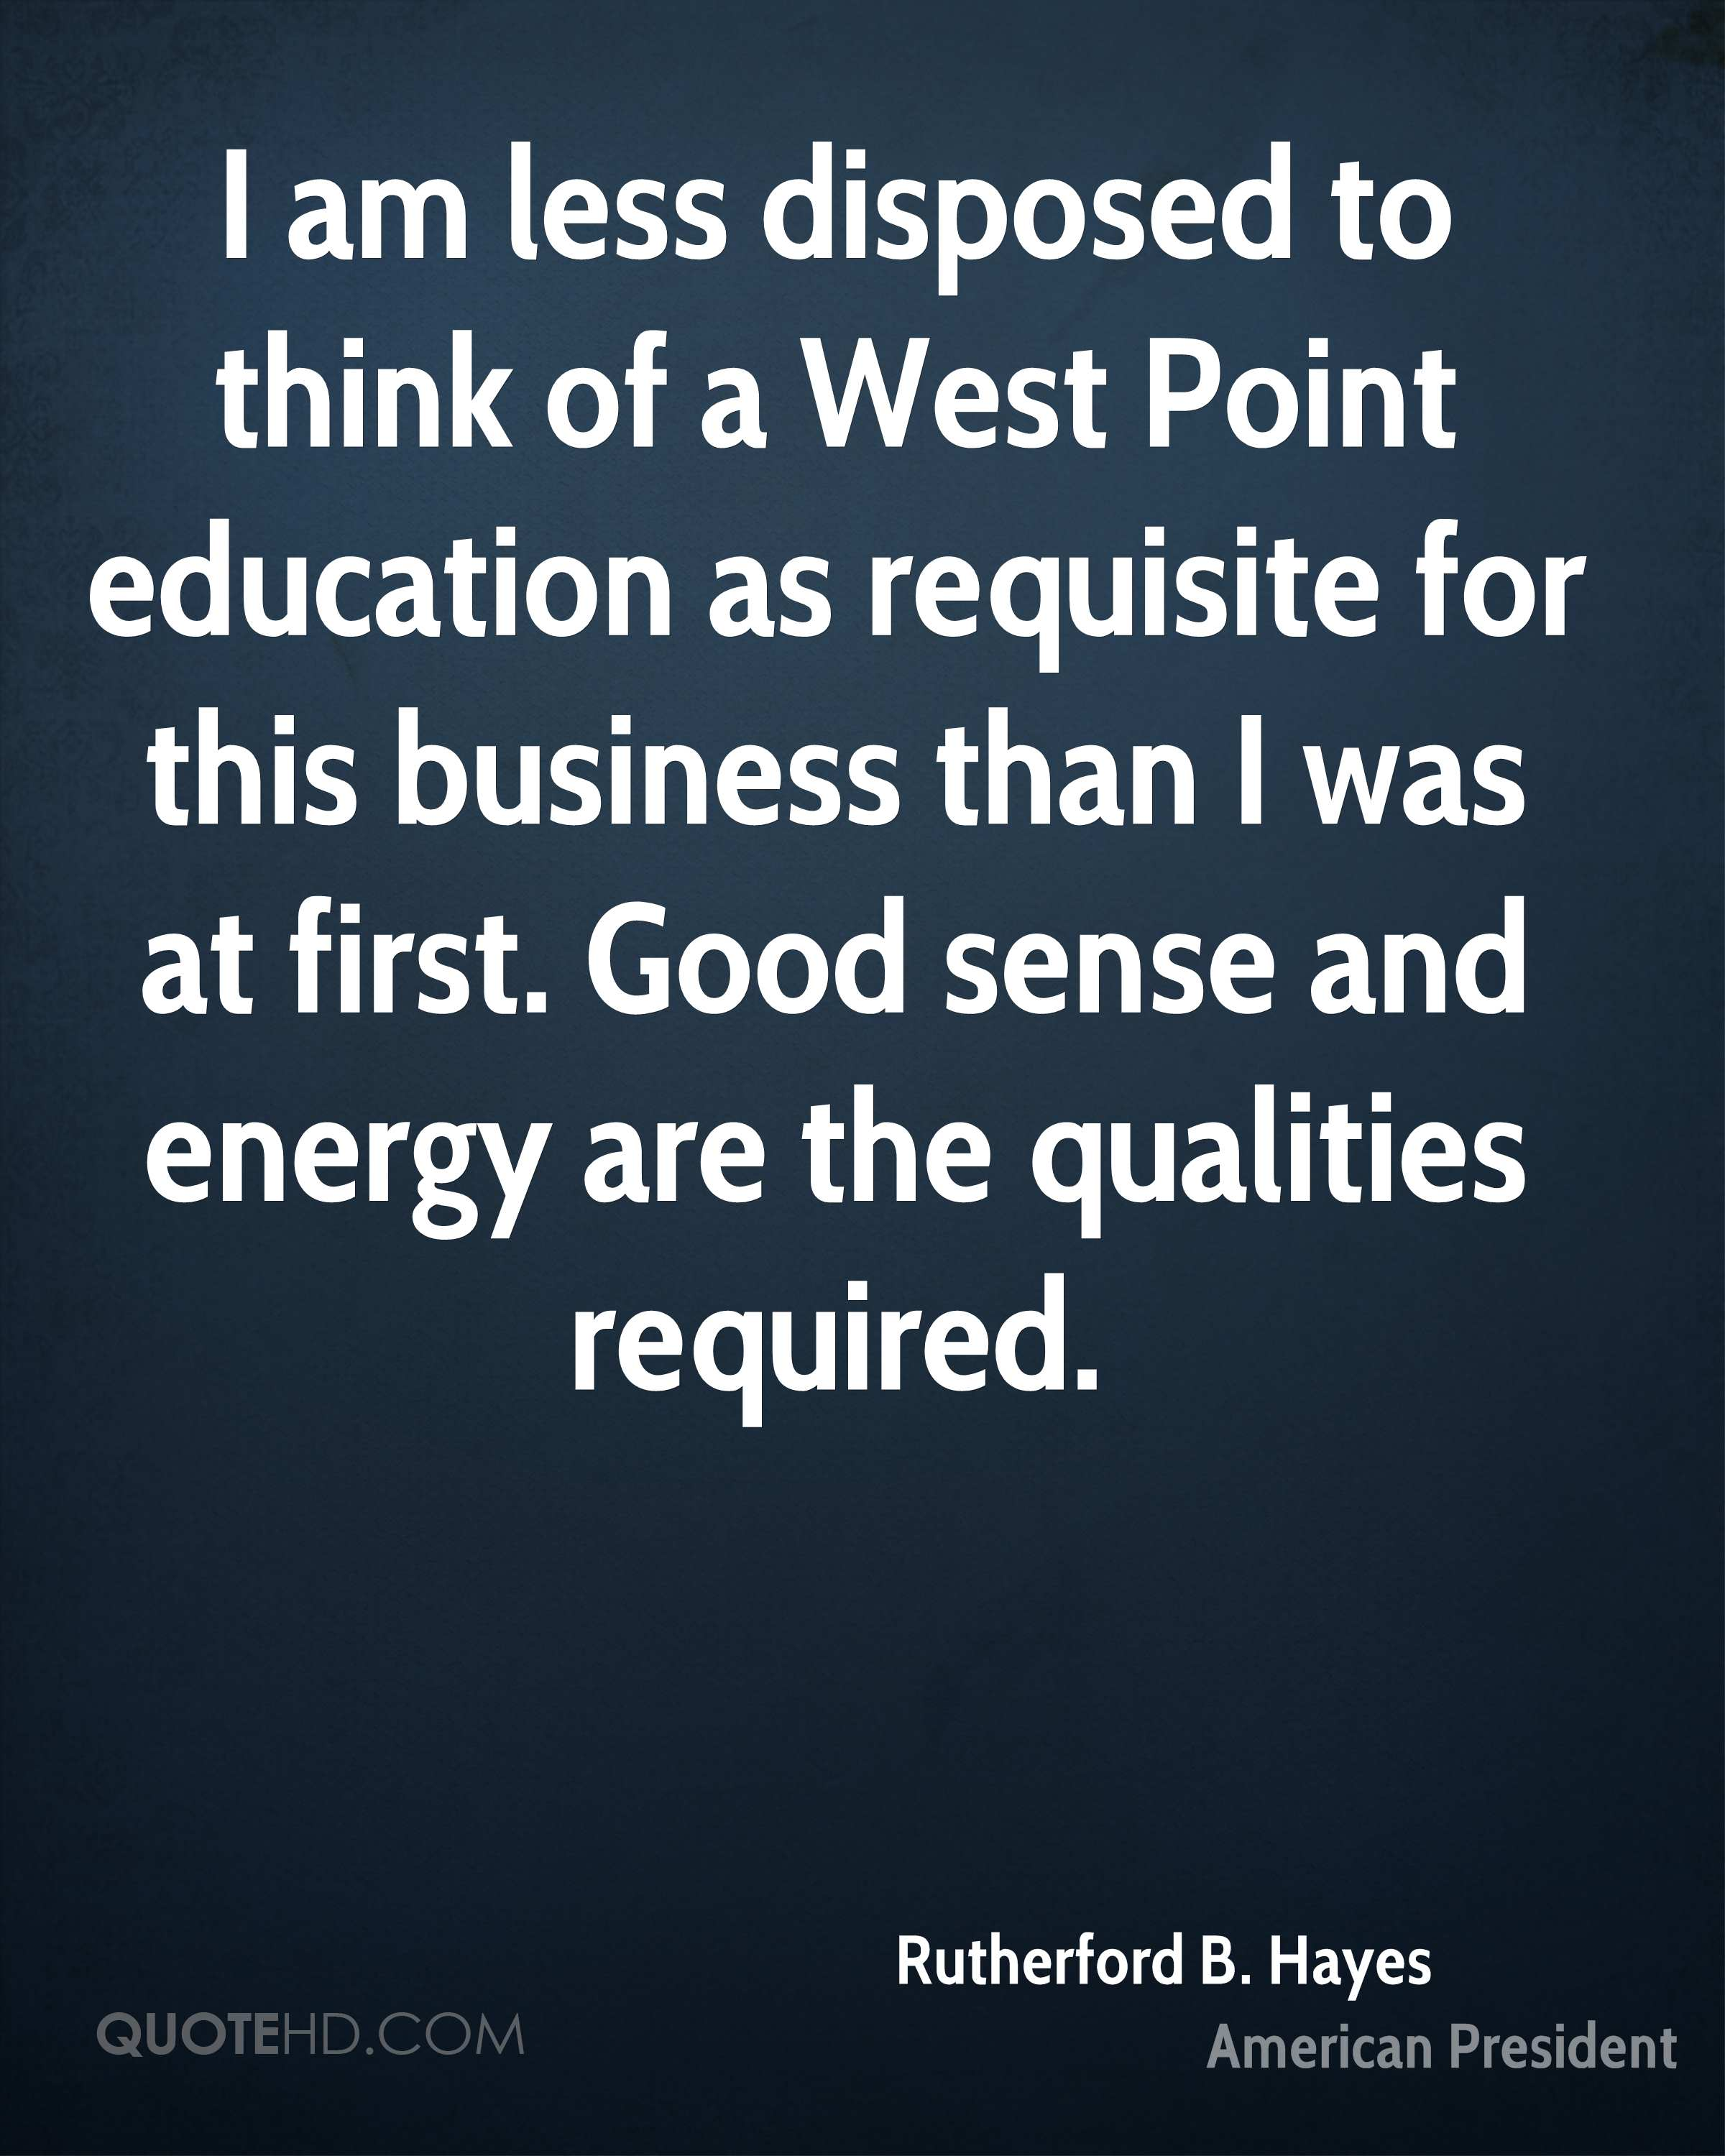 I am less disposed to think of a West Point education as requisite for this business than I was at first. Good sense and energy are the qualities required.